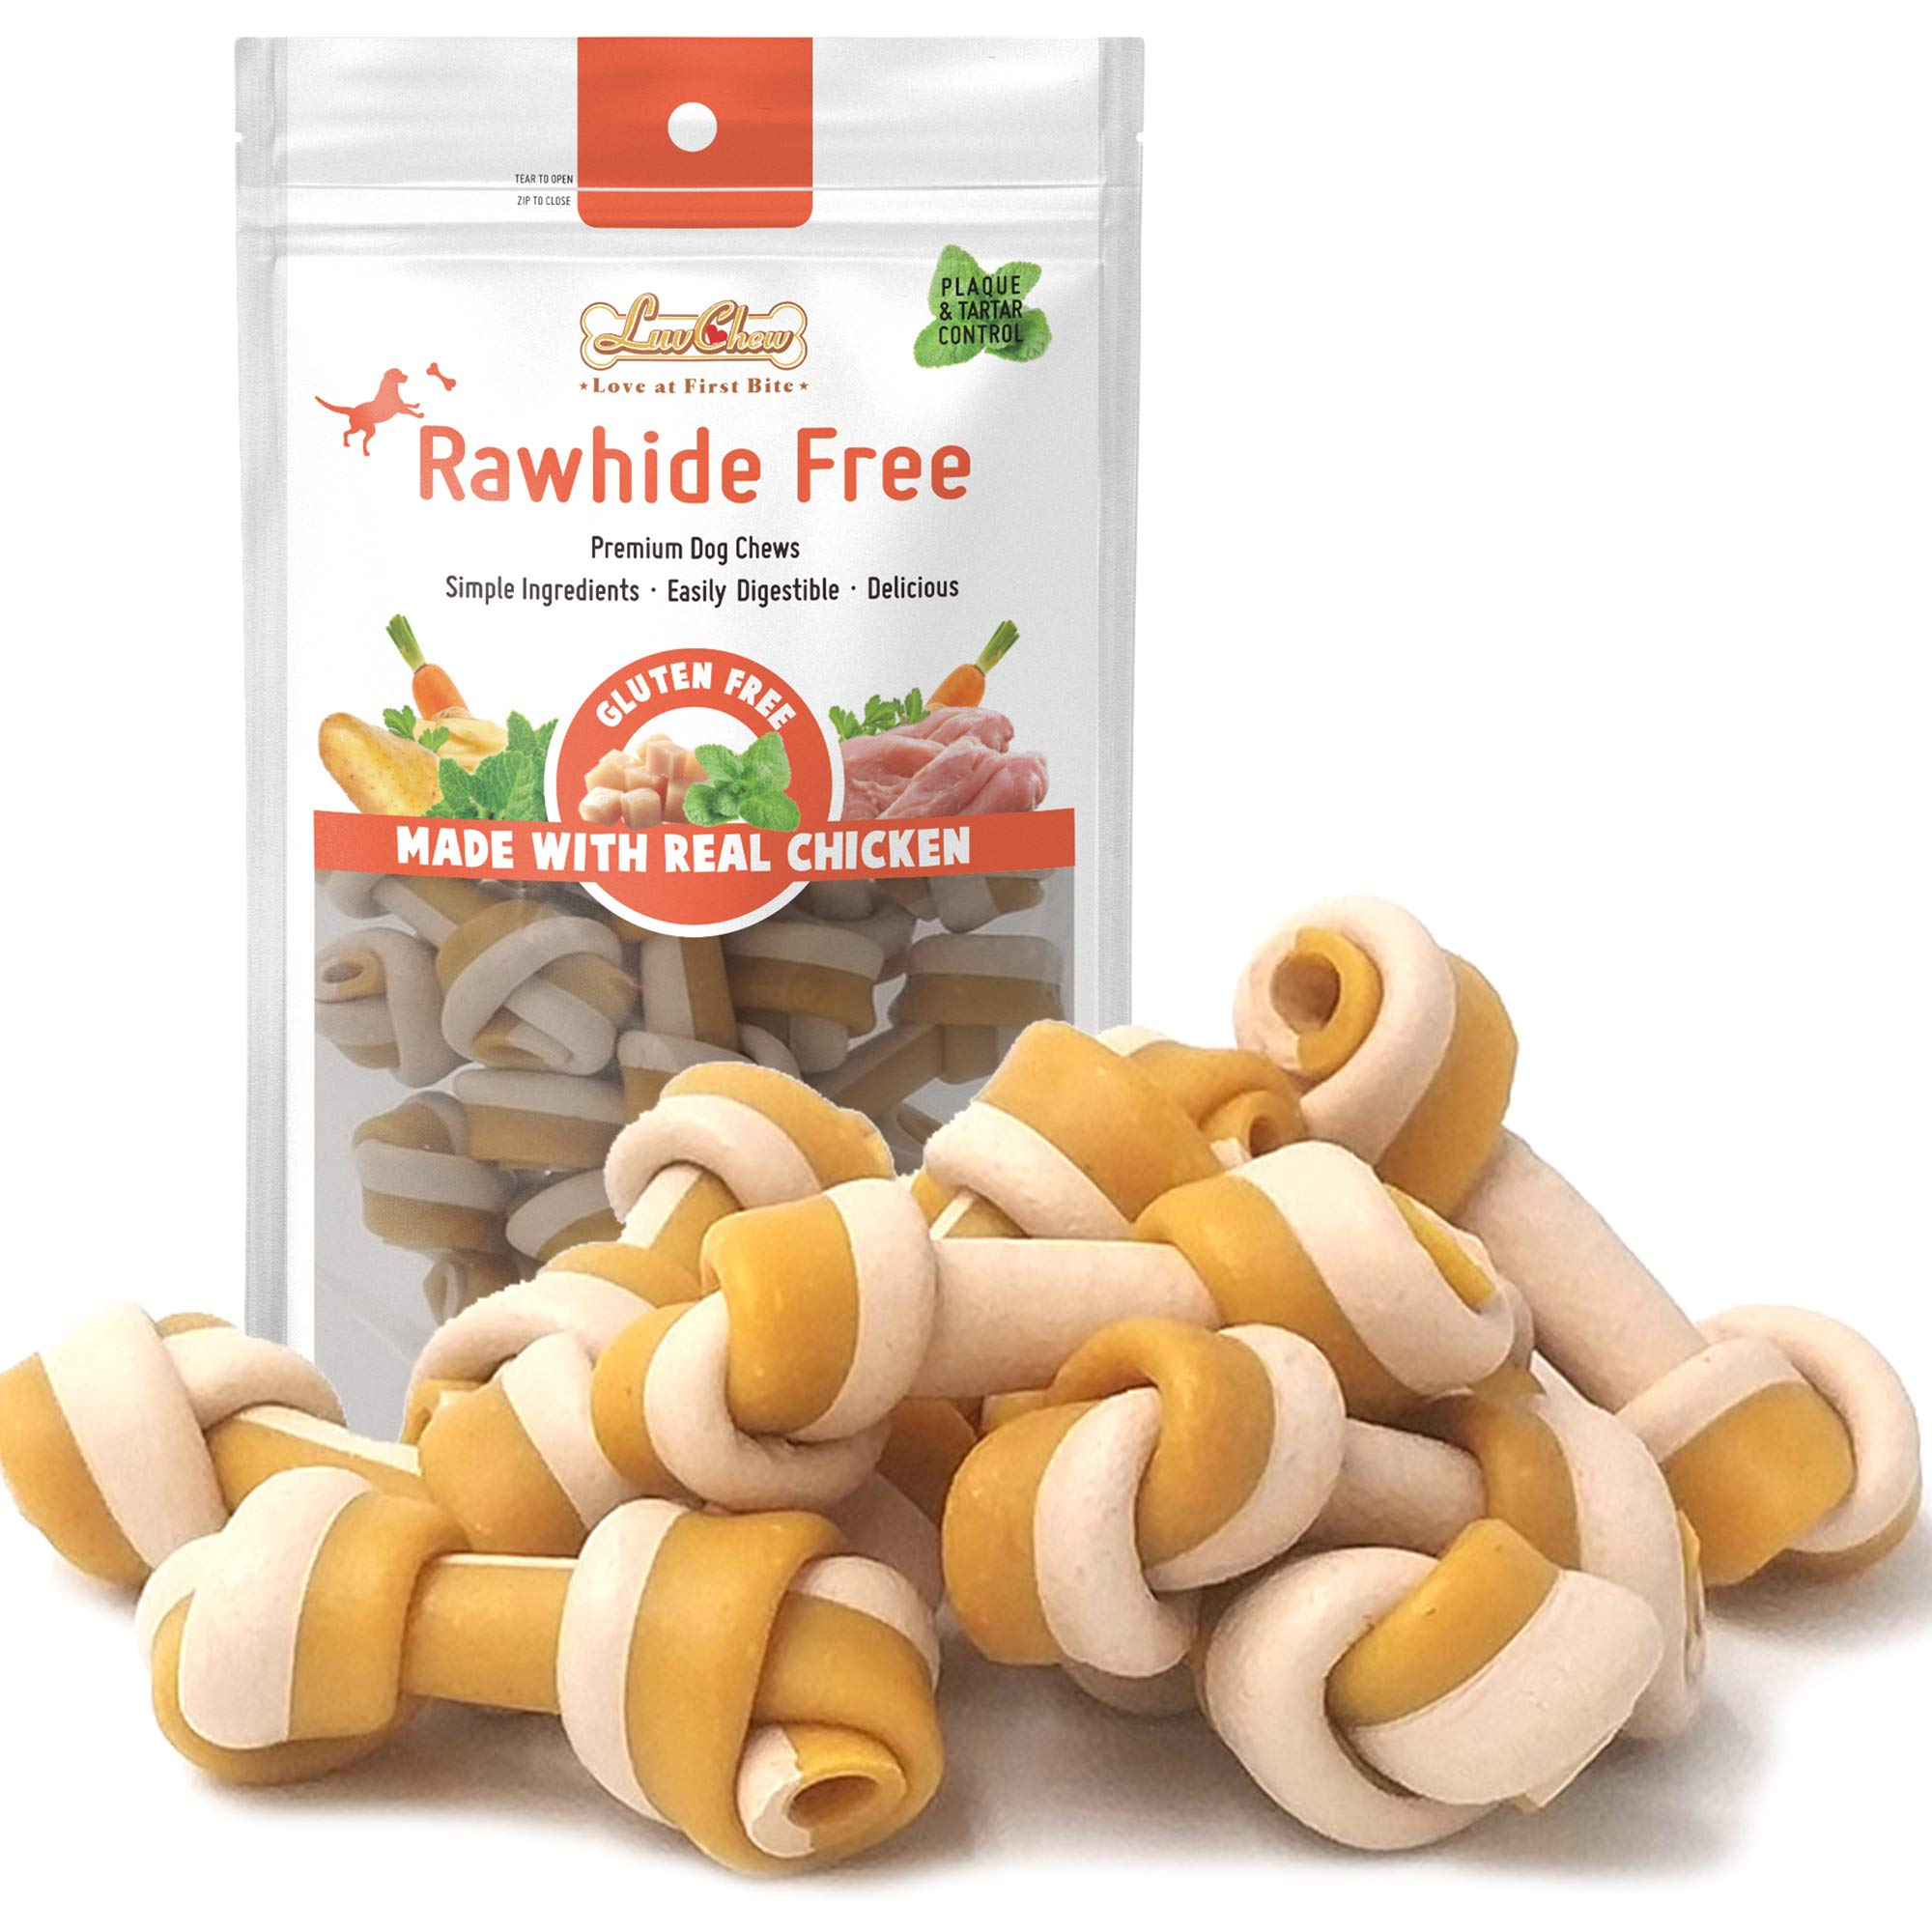 LuvChew Gluten Free Rawhide Free Chicken Bones Made with Limited Ingredients - Real Chicken & Wholesome Vegetables, Delicious, Healthy, Highly Digestible, USDA & FDA Approved (Mini 18pcs/Pack)